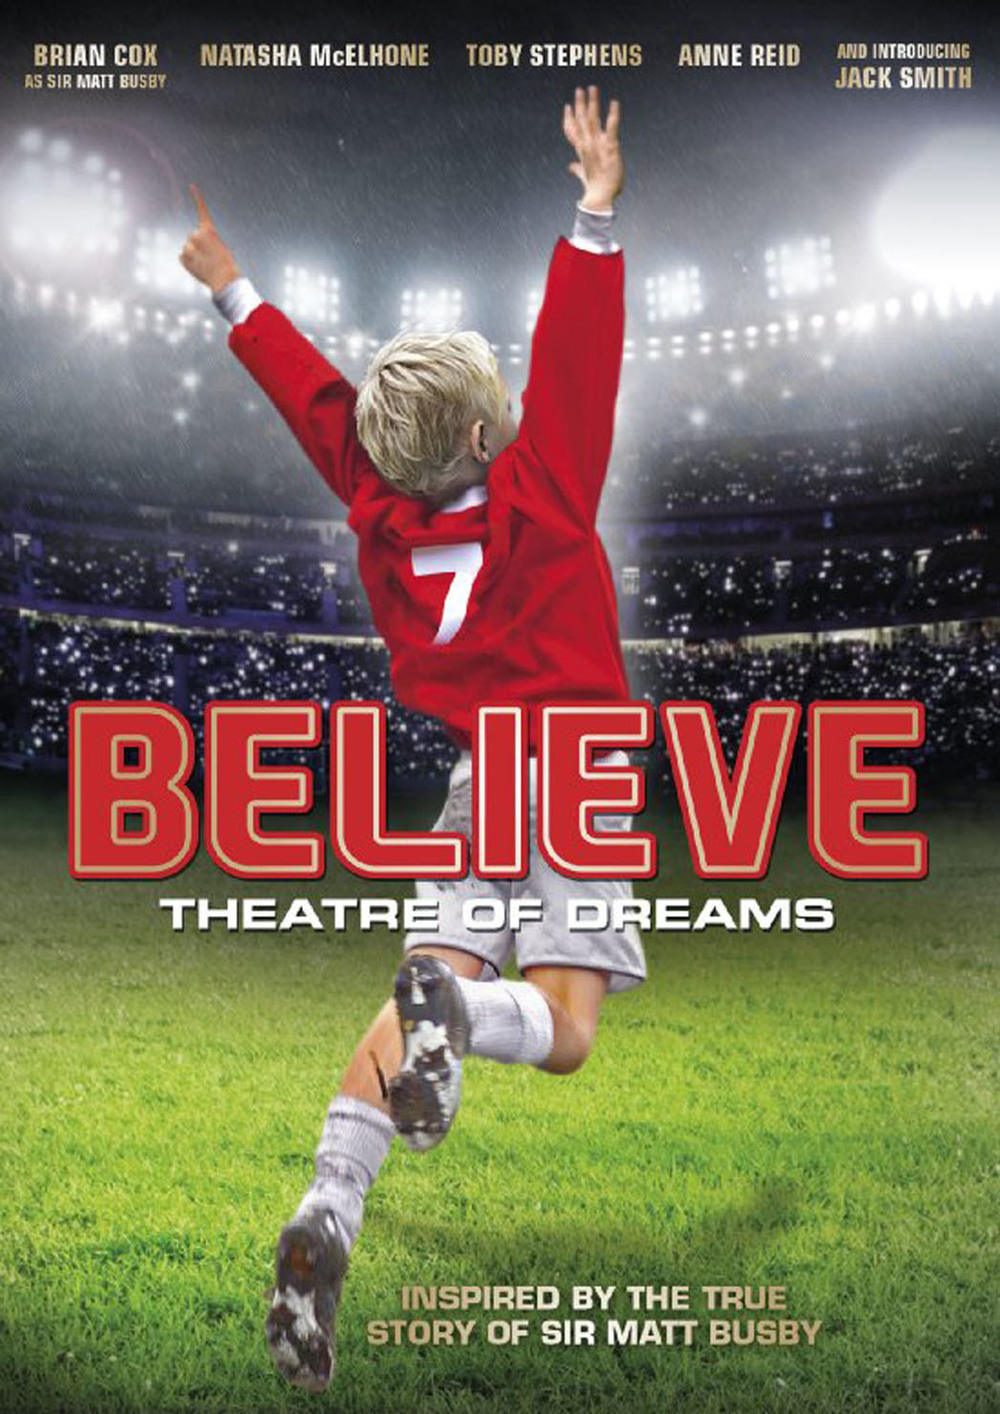 believe_film_poster_a_p.jpg